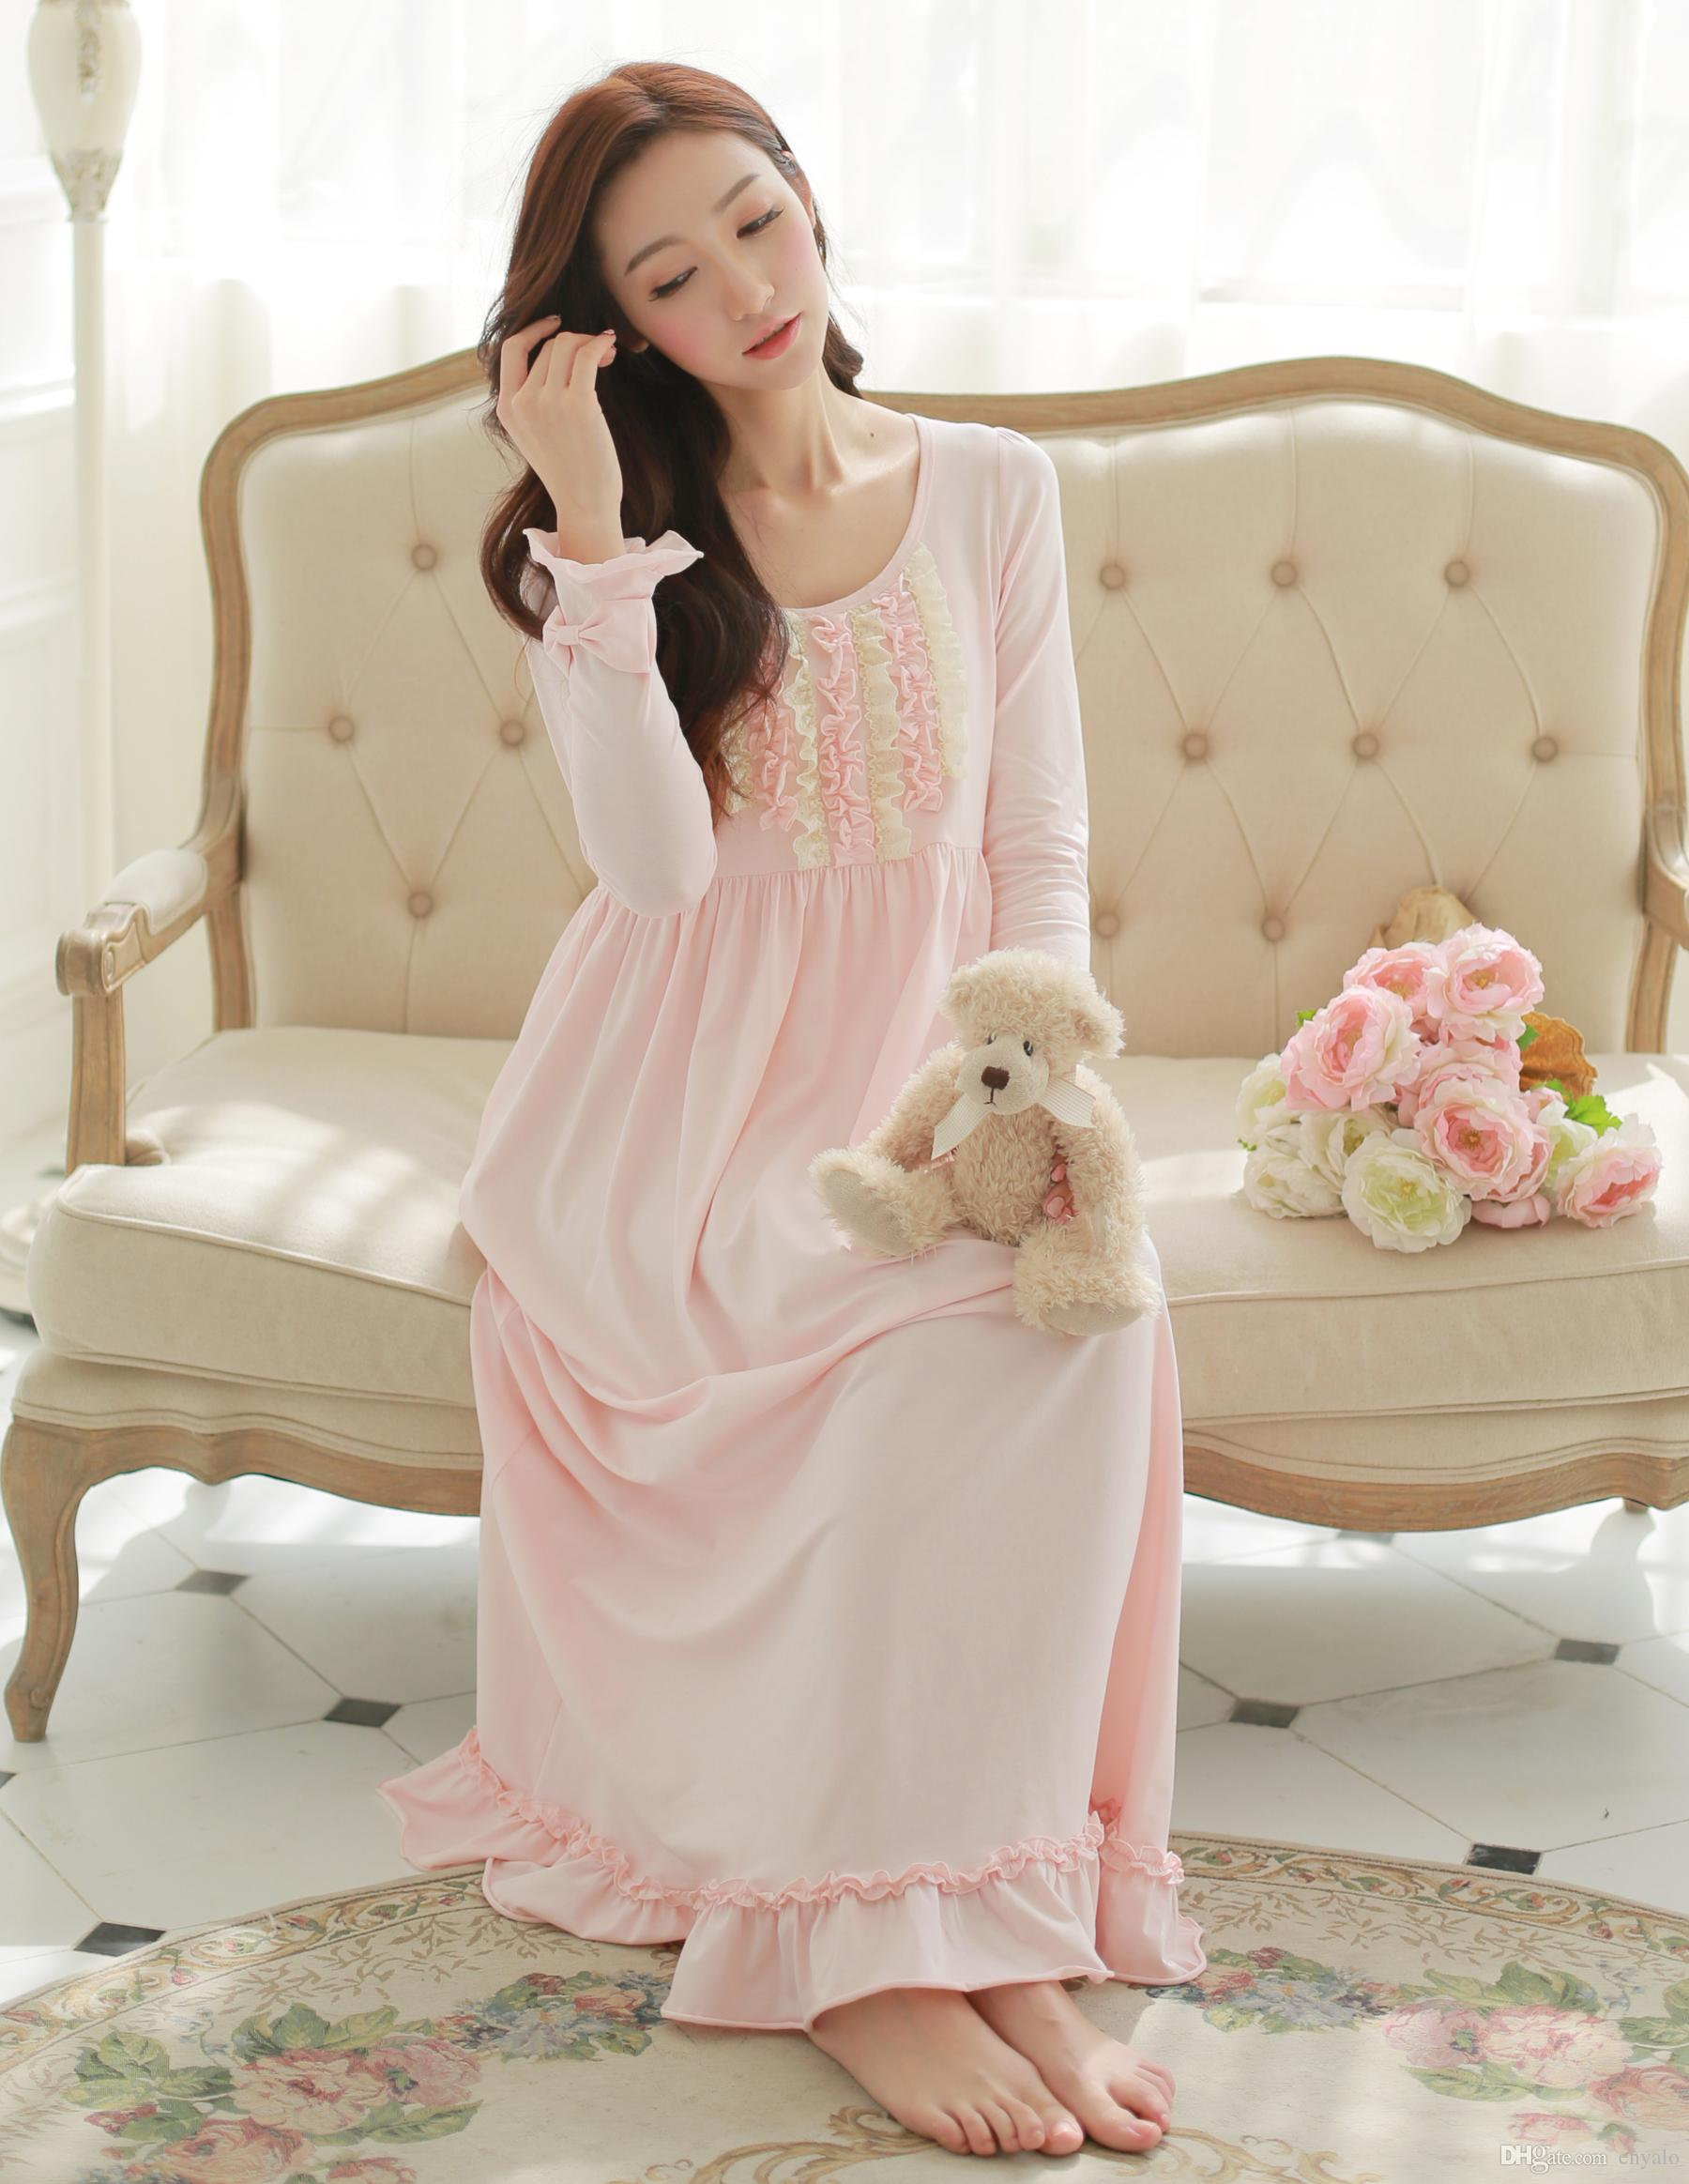 1ef82ab413 2019 2015 NEW Women 100% Cotton Princess Nightgowns Women Long White Pink  Pajamas Royal Sleepwear Cute Nightdress S